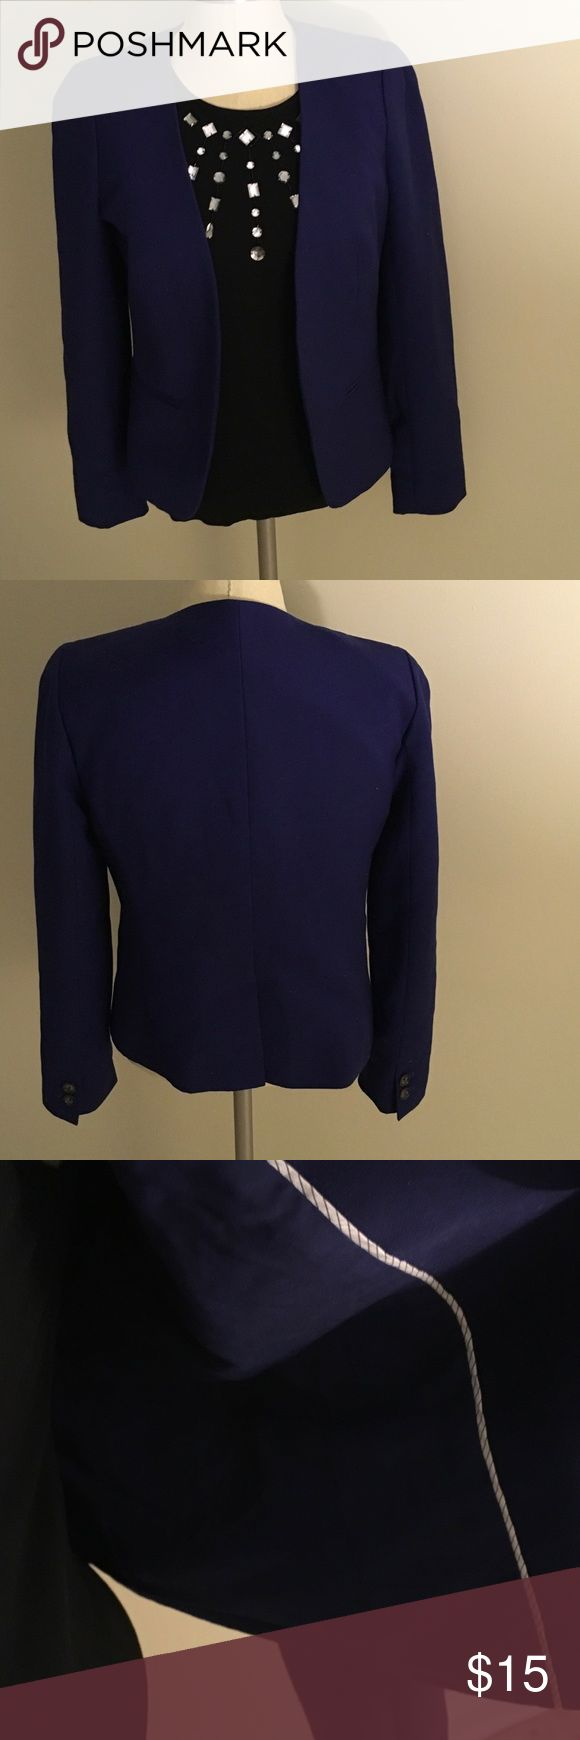 LOFT blue career blazer Beautiful blue LOFT career blazer. No buttons. Only worn once.  Size is 6 petite but can also fit a size 4 regular. Is in excellent condition with no snags or holes. LOFT Jackets & Coats Blazers